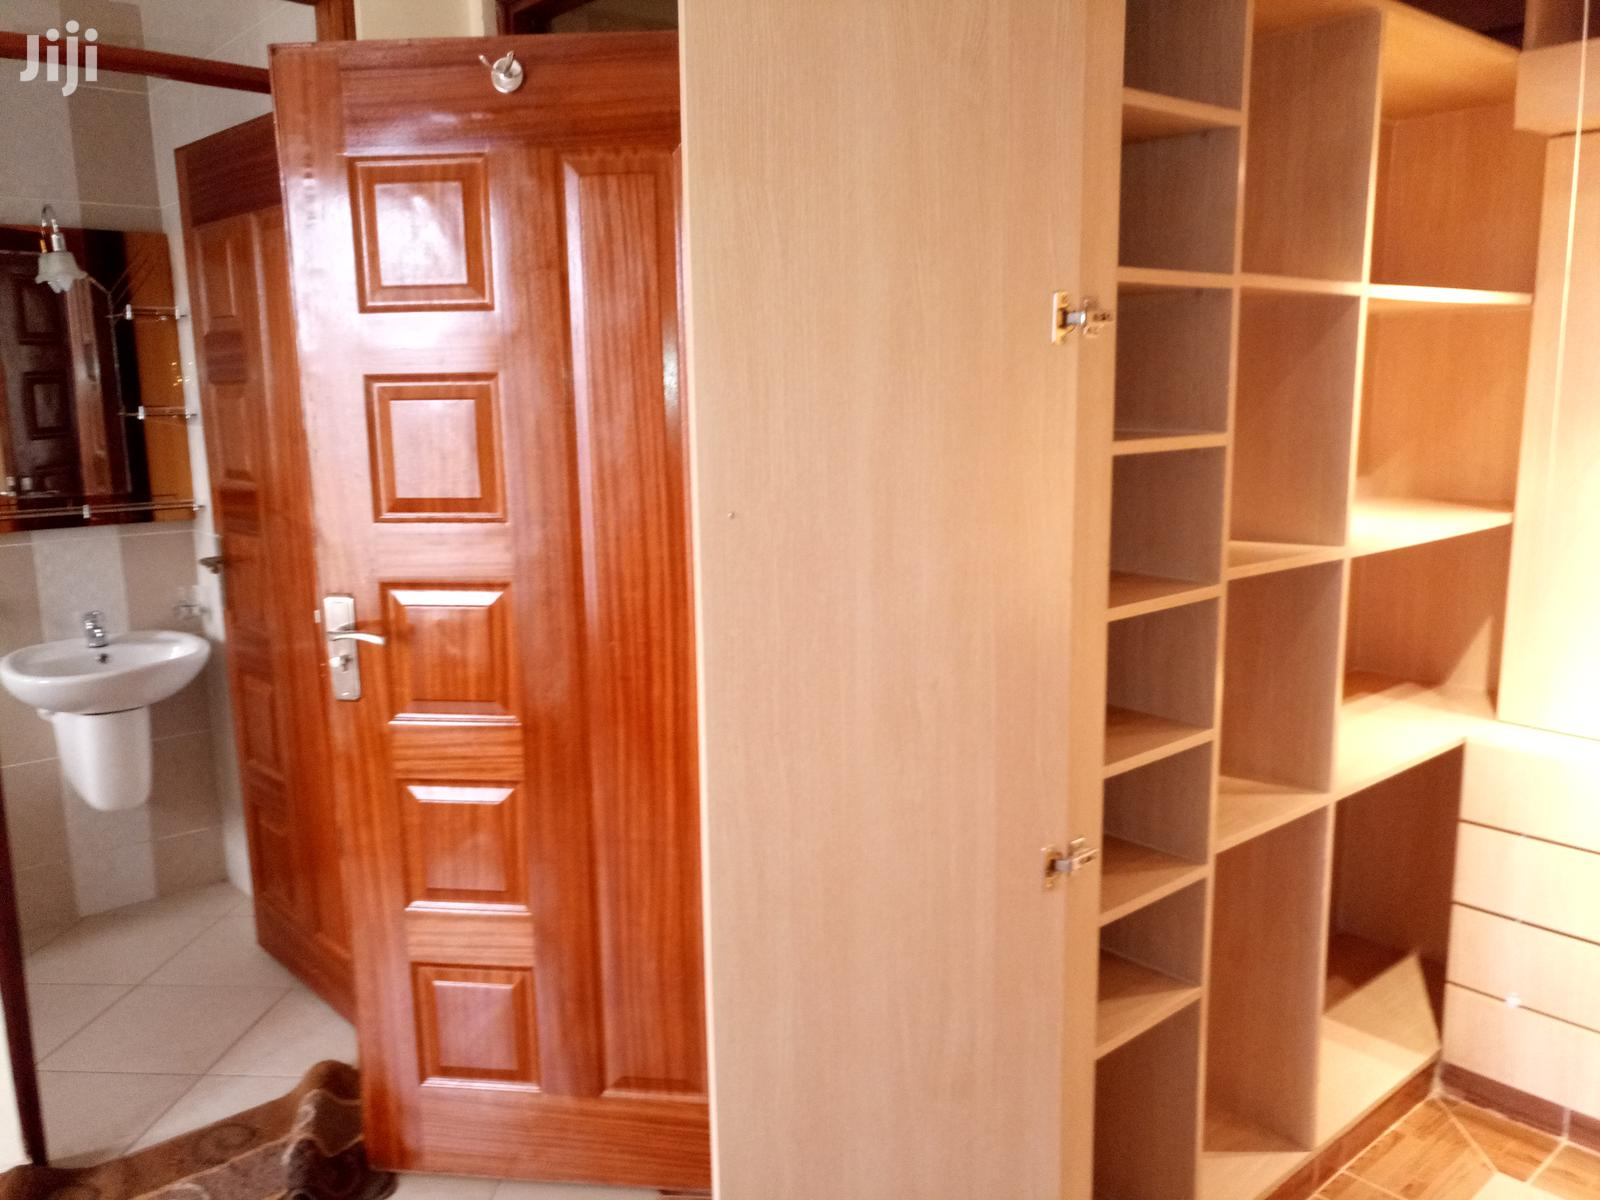 Exquisite Modern Upmarket Two Bedroom House To Let | Houses & Apartments For Rent for sale in Ongata Rongai, Kajiado, Kenya